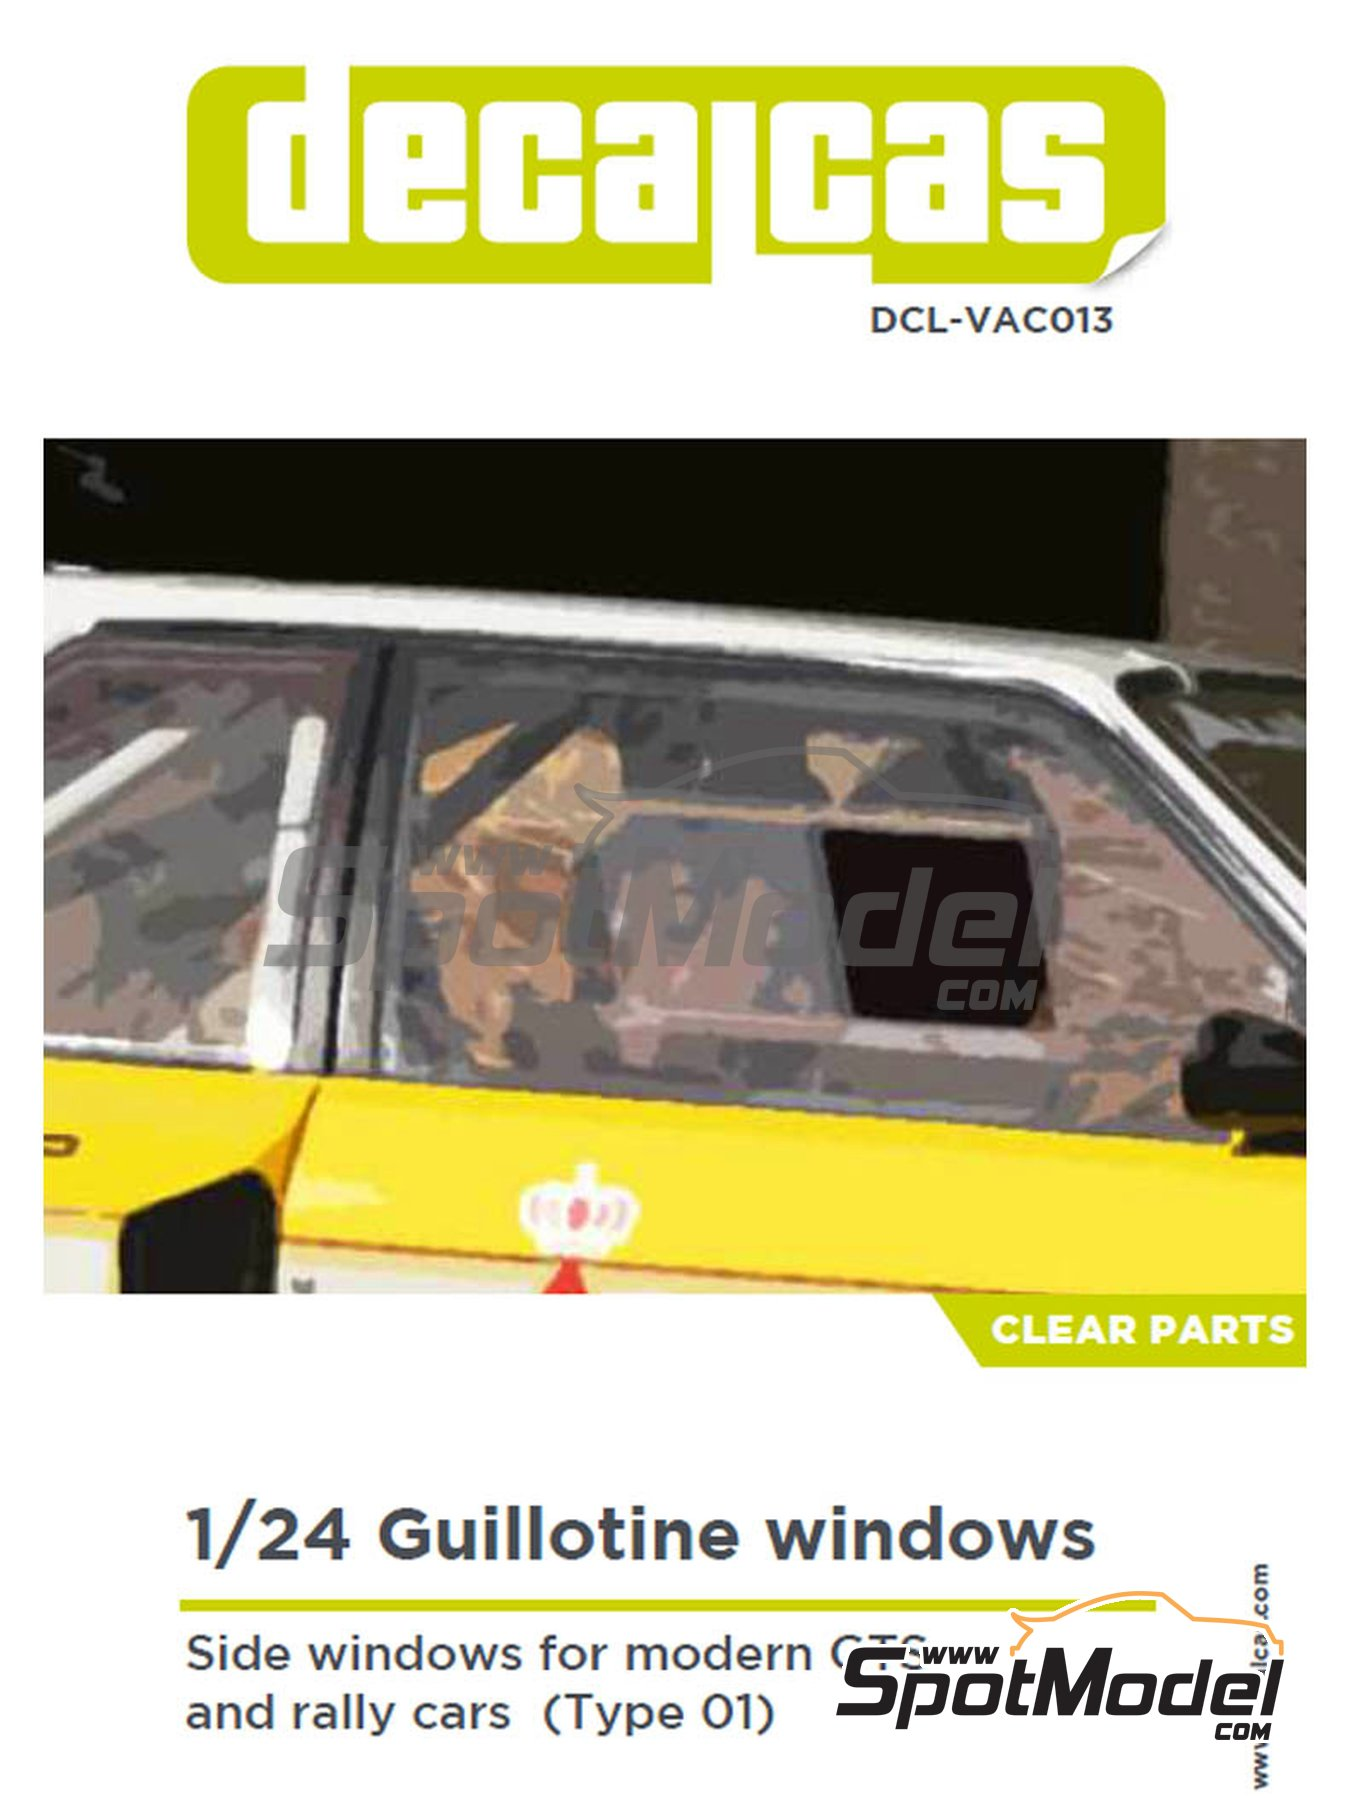 Guillotine windows for modern GTS and rally cars - Type 01 | Clear parts in 1/24 scale manufactured by Decalcas (ref. DCL-VAC013) image